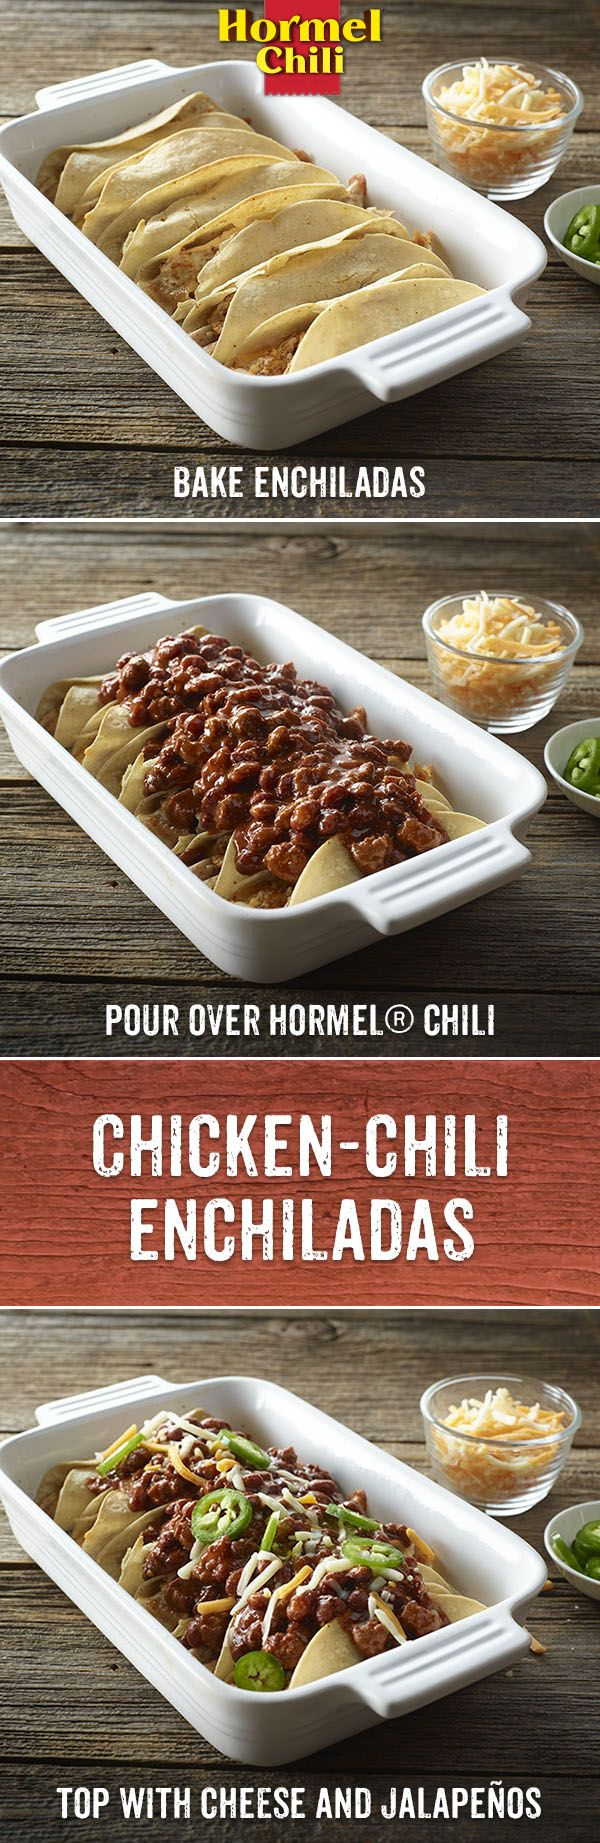 In Chili Nation we make an enchilada an enchililada by pouring chili on top. Give it a try. You'll be glad you did.  | HORMEL® Chili Recipe | Chili Nation | Chili Enchilada | Dinner | Lunch | Easy Meals | Quick and Easy Recipes | Mexican | Tex Mex